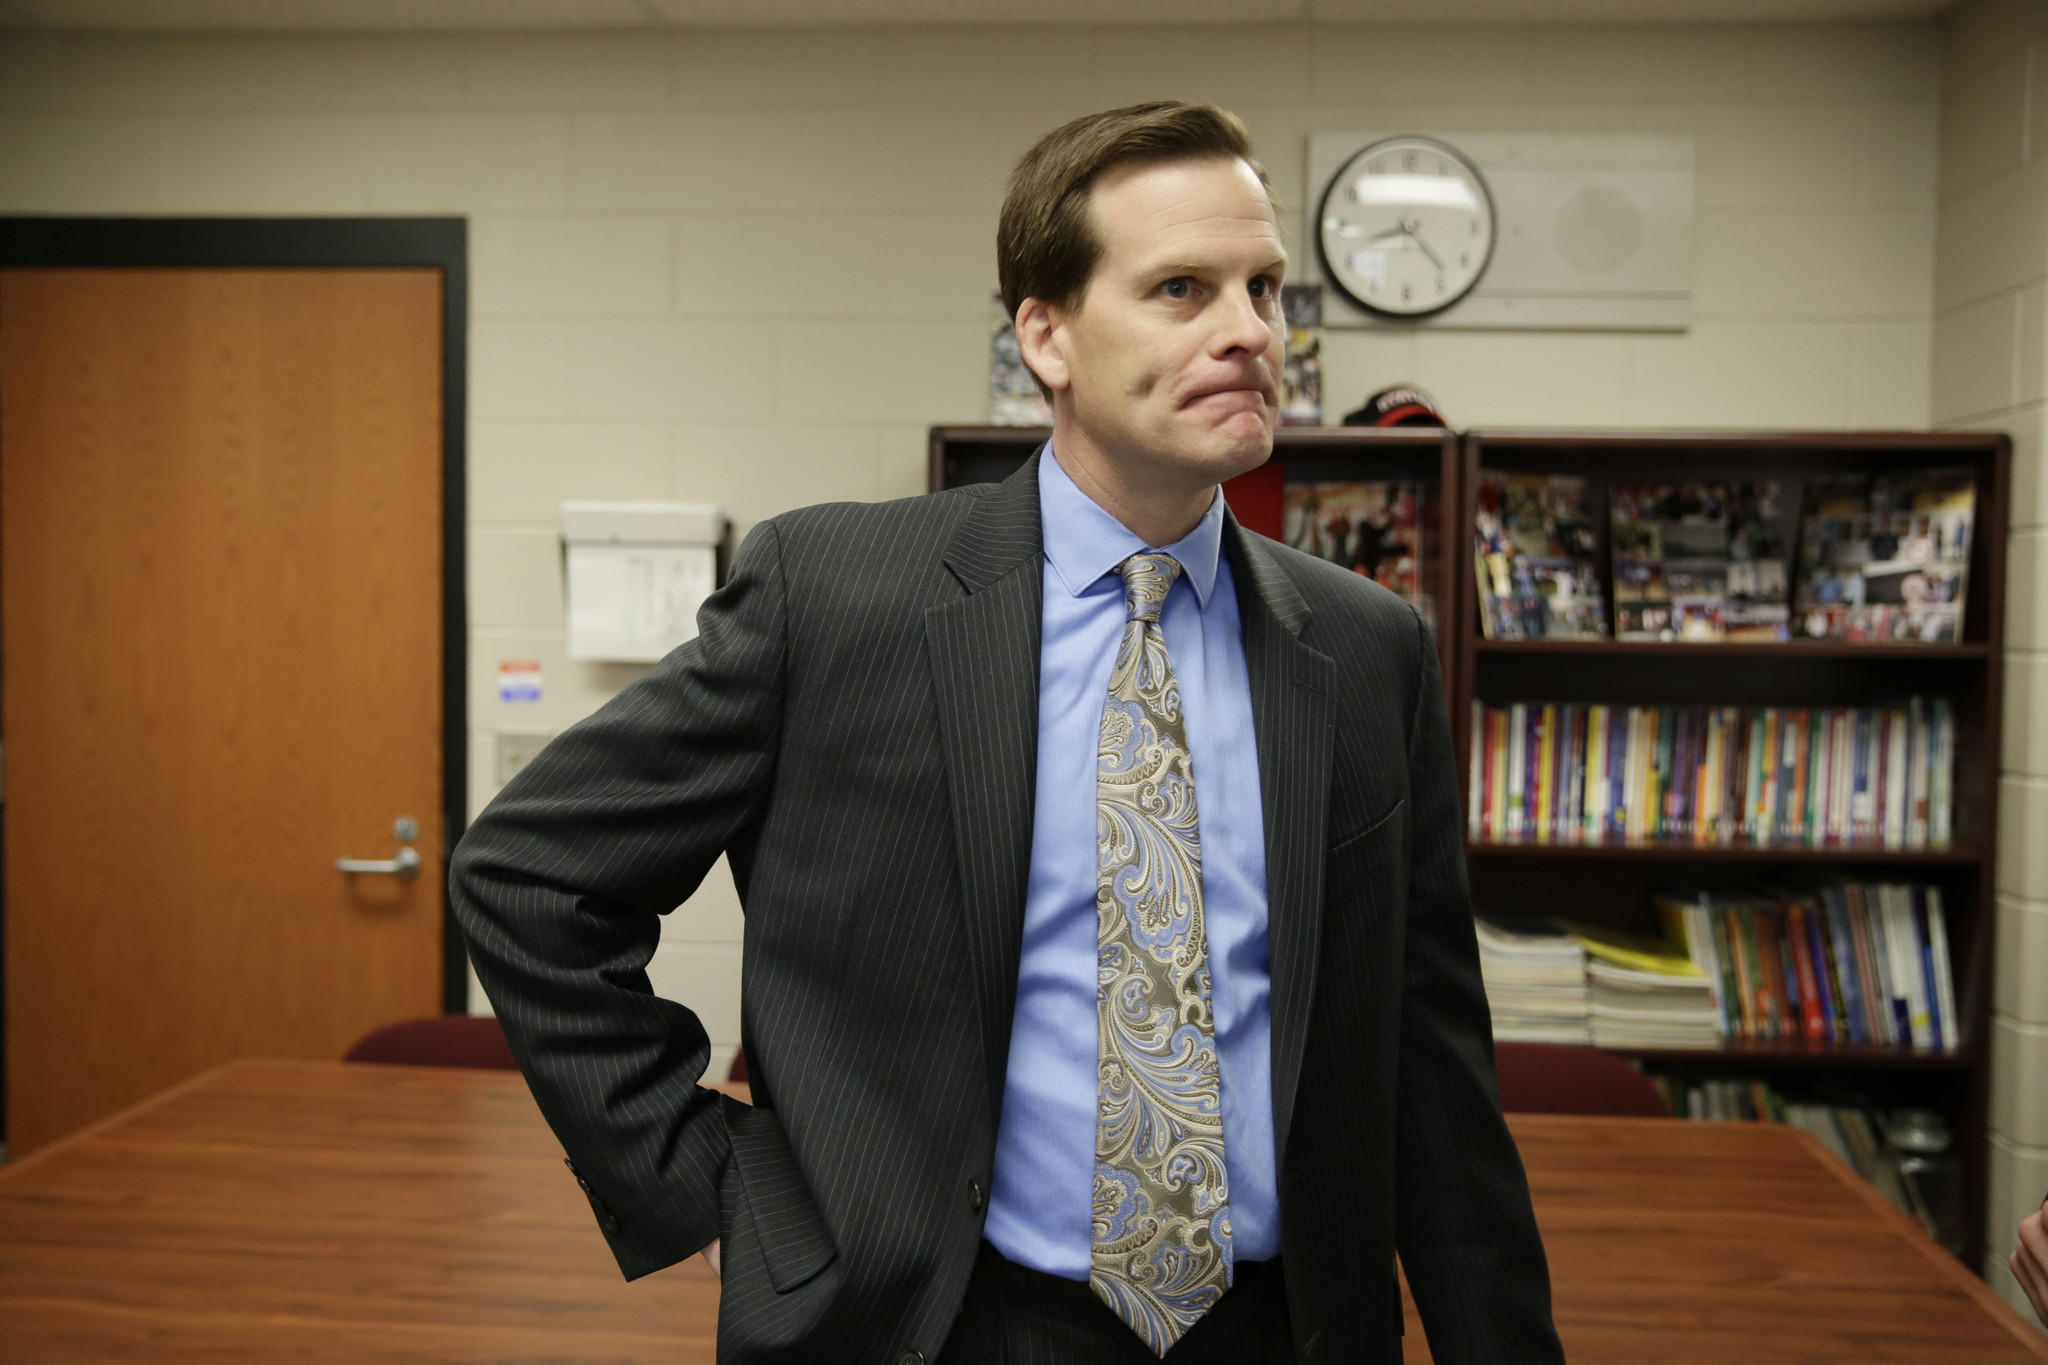 """Dr. Craig Winkelman speaks with reporters from inside his office in Station Middle School in Barrington. Winkelman confirmed that police are investigating the """"sexting"""" of inappropriate sexual images among a handful of 8th graders at the school."""